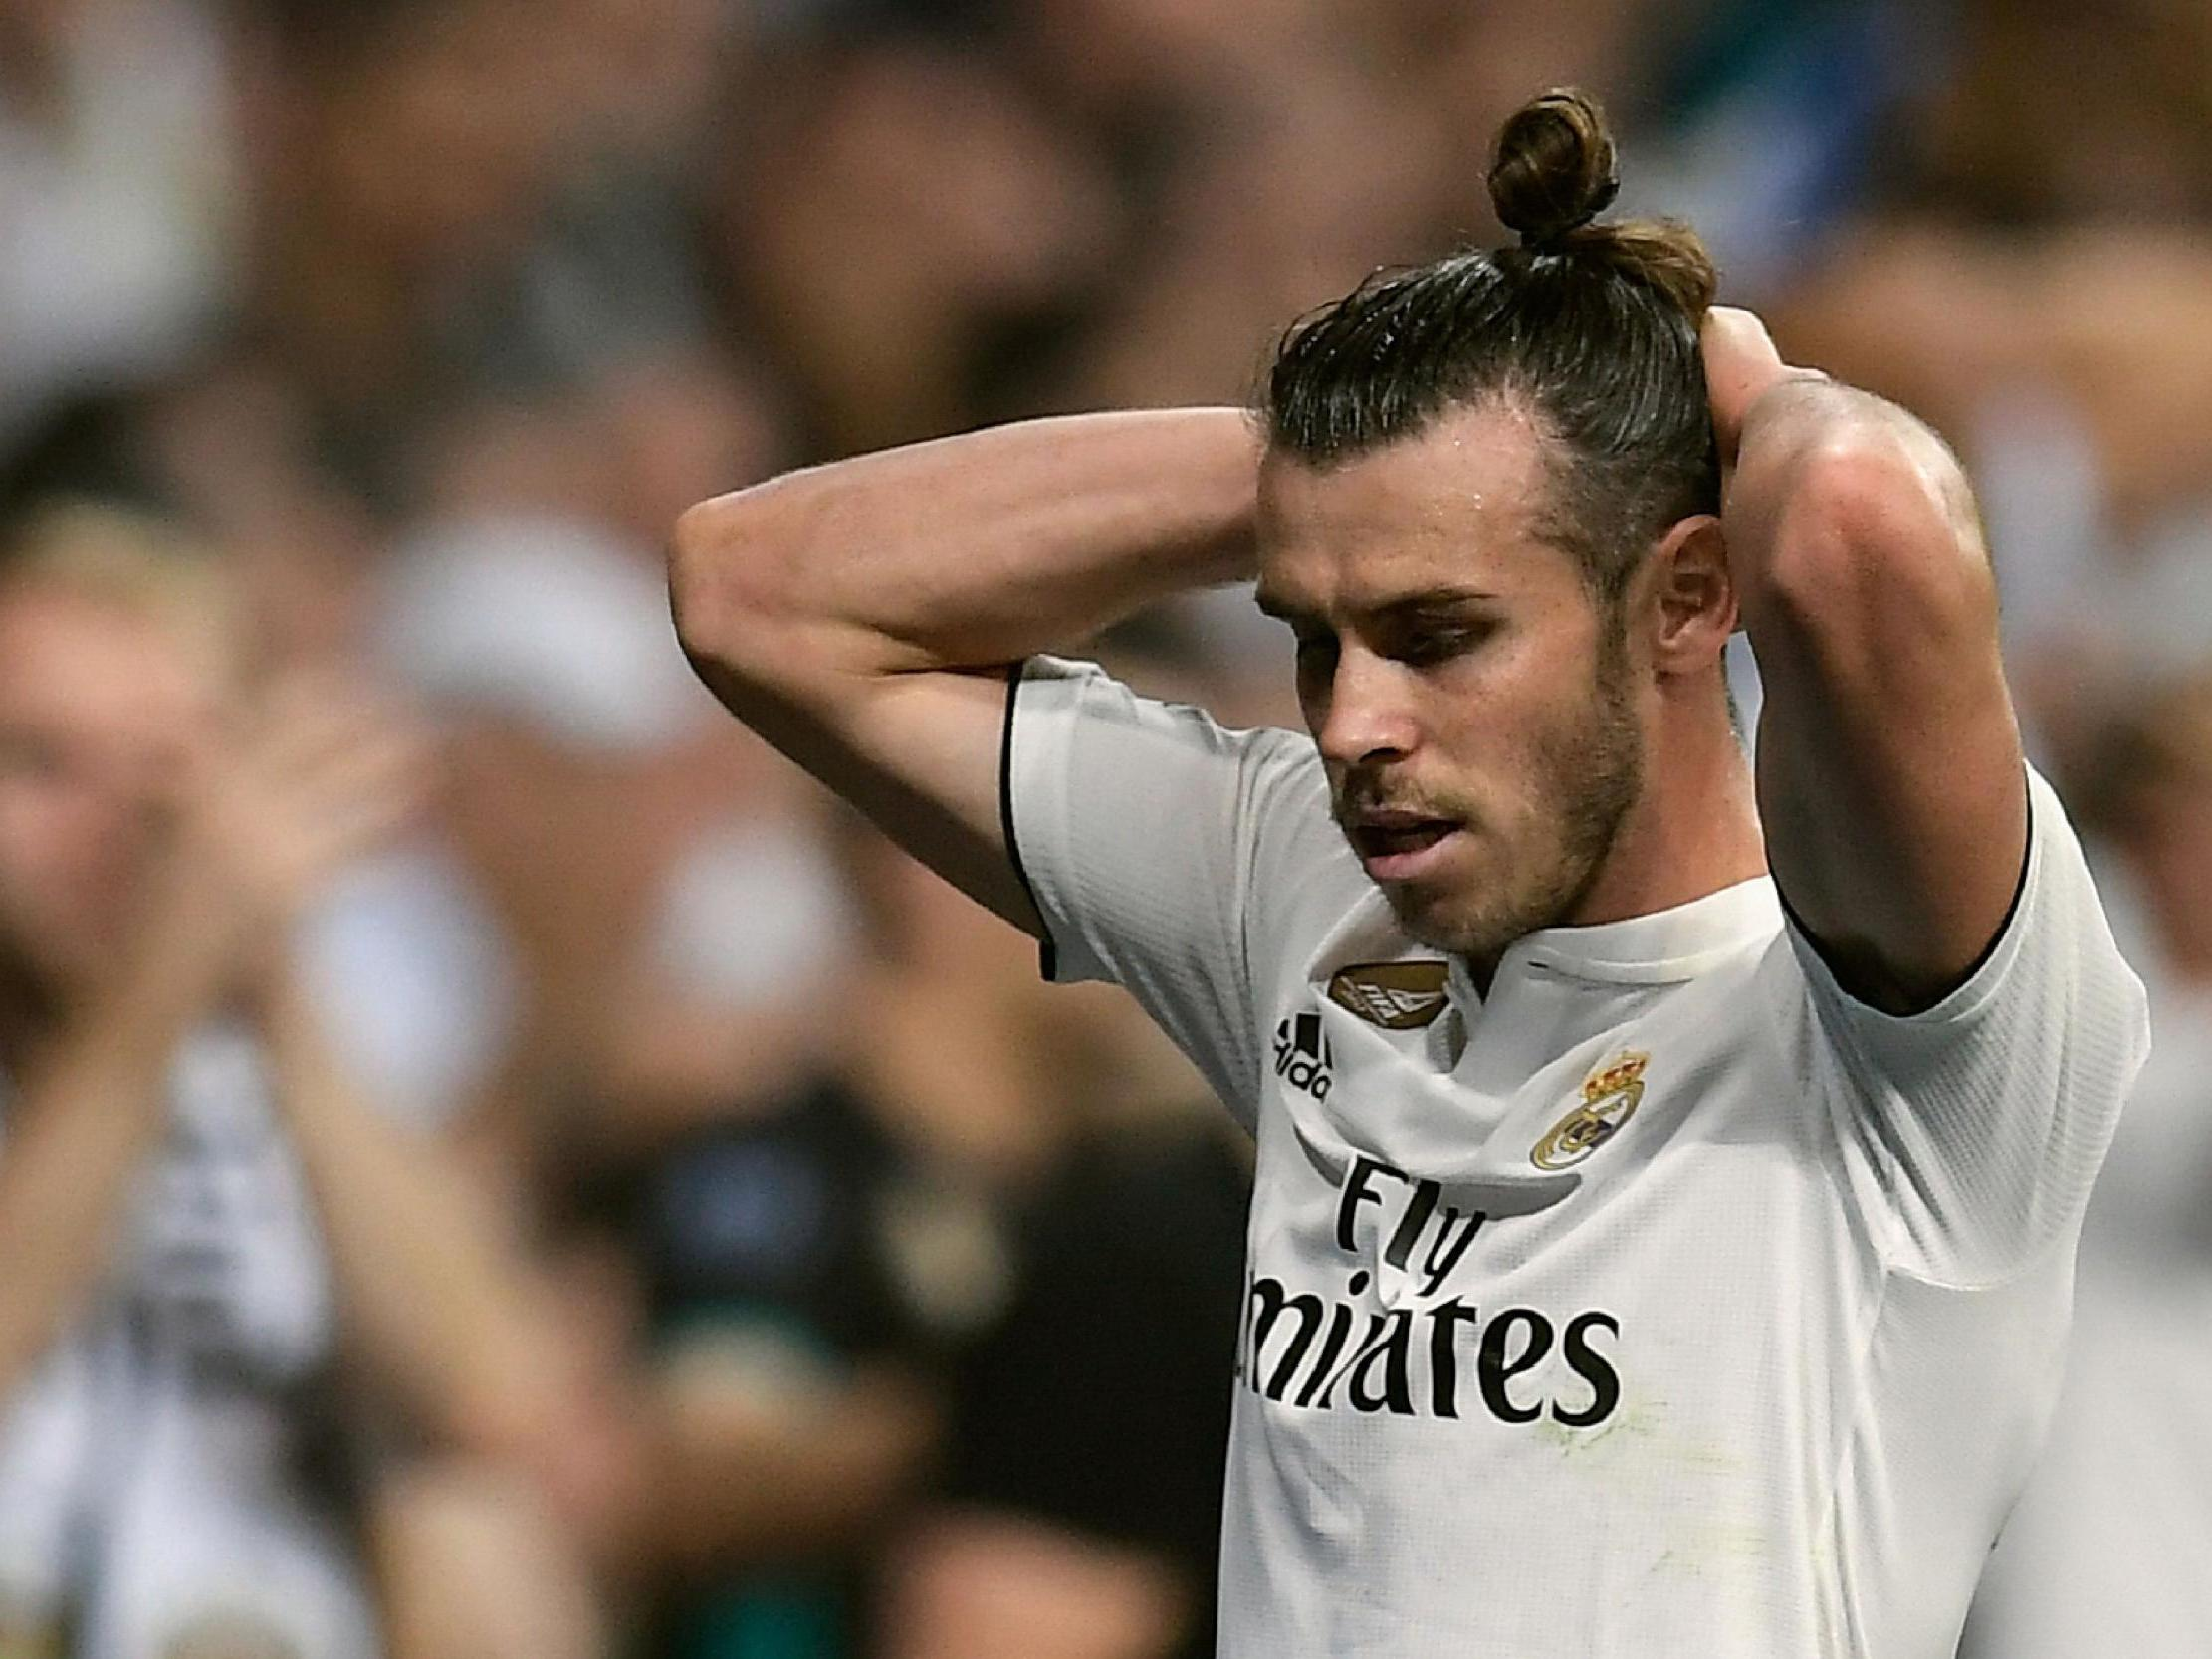 Gareth Bale transfer news: Real Madrid winger will not be leaving club on loan, confirms agent